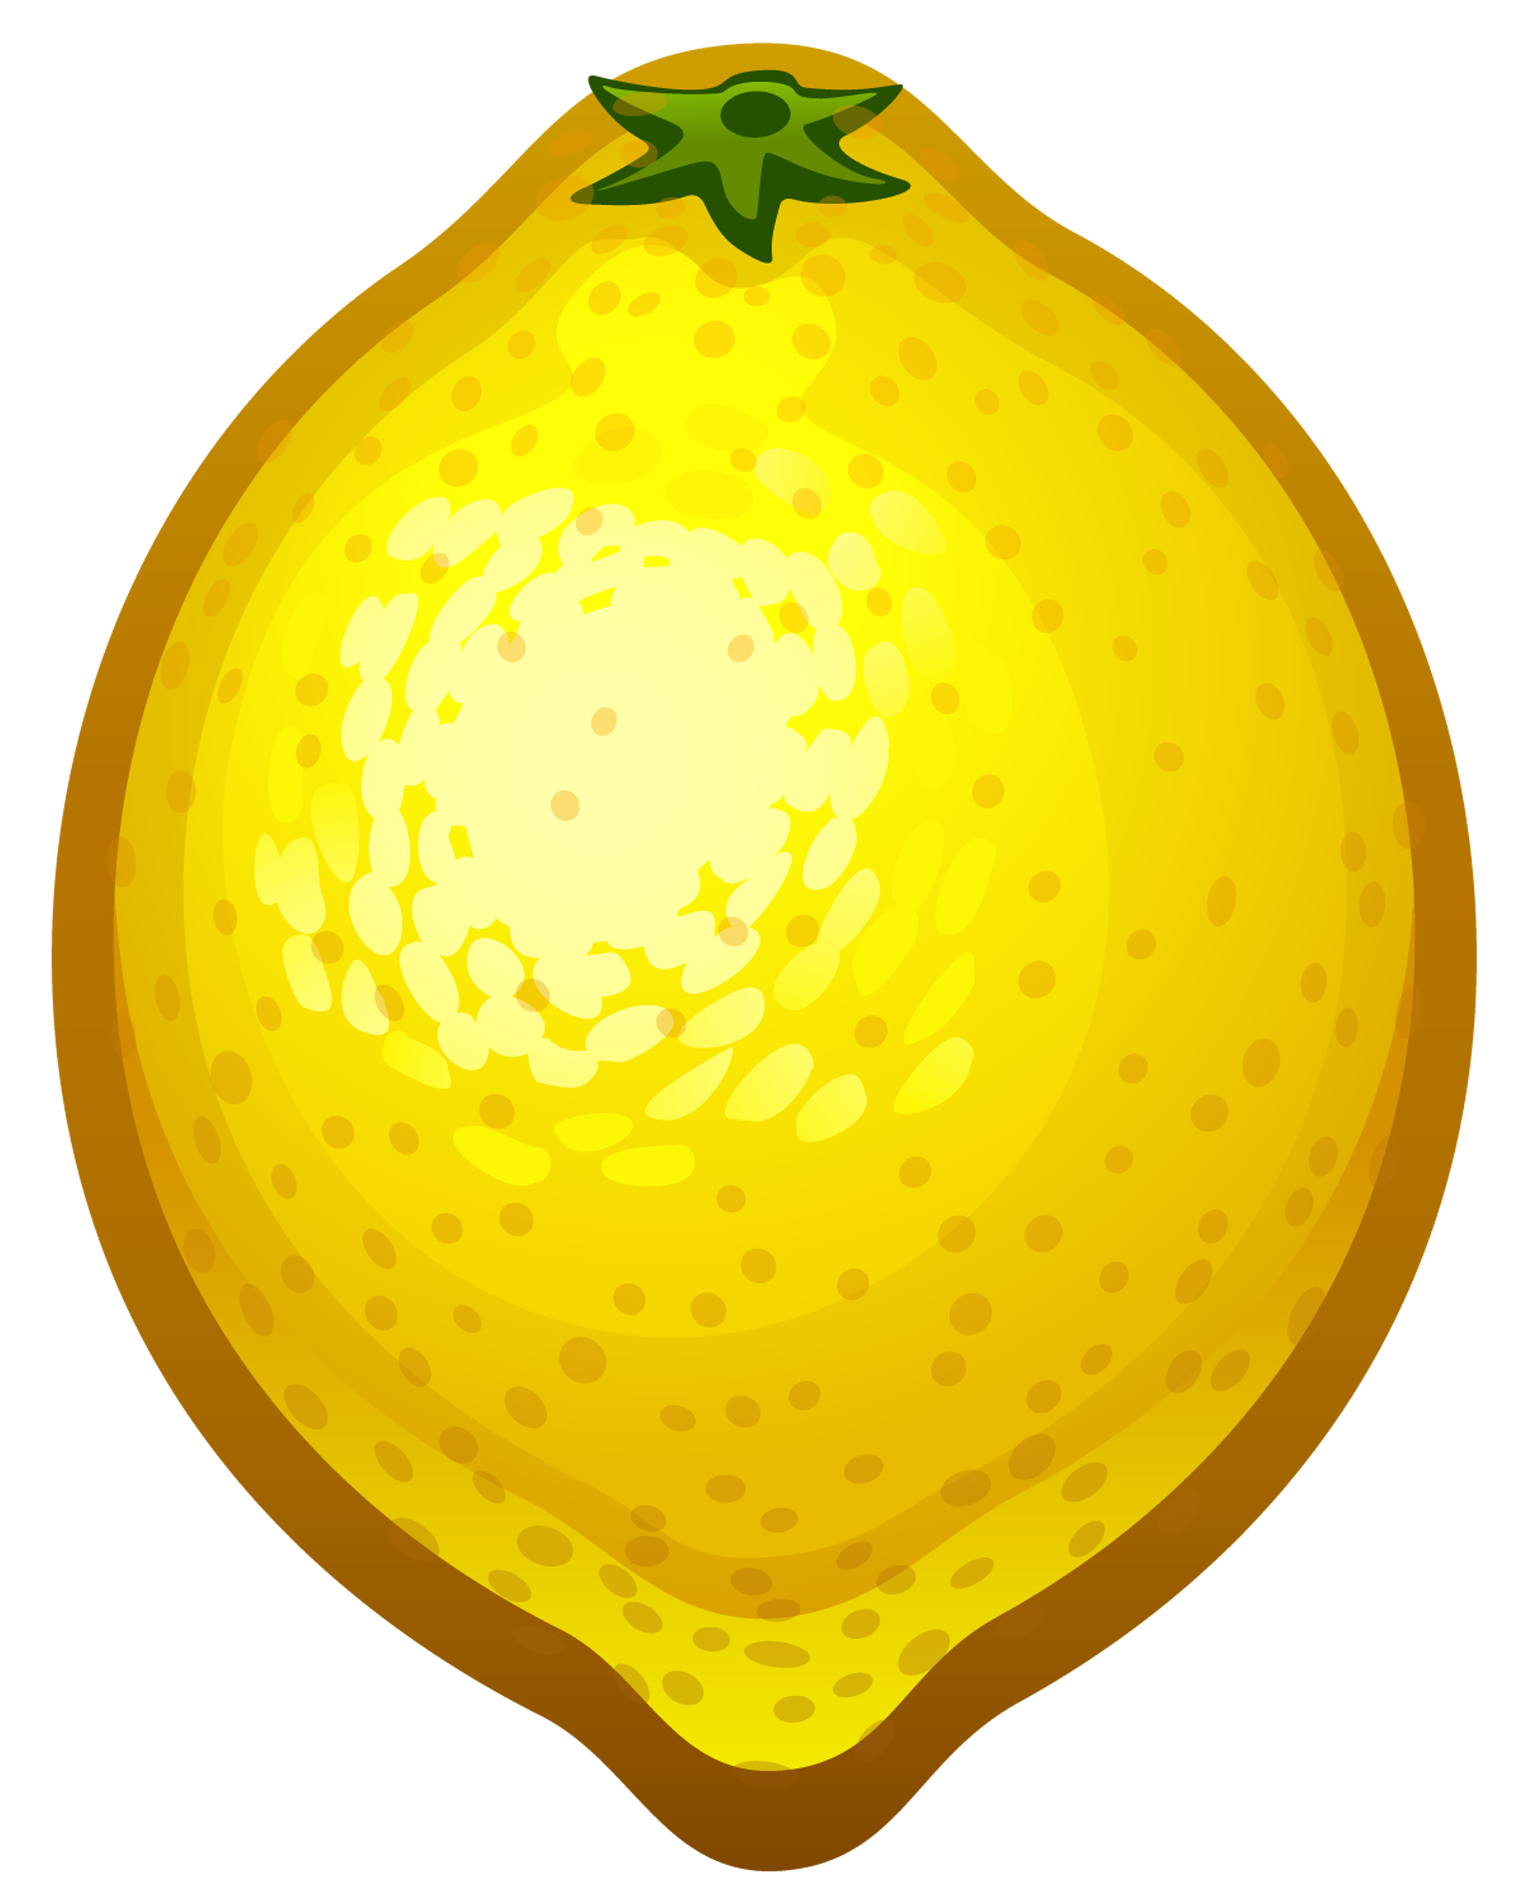 picture royalty free library Lemons clipart transparent background. Large painted lemon png.